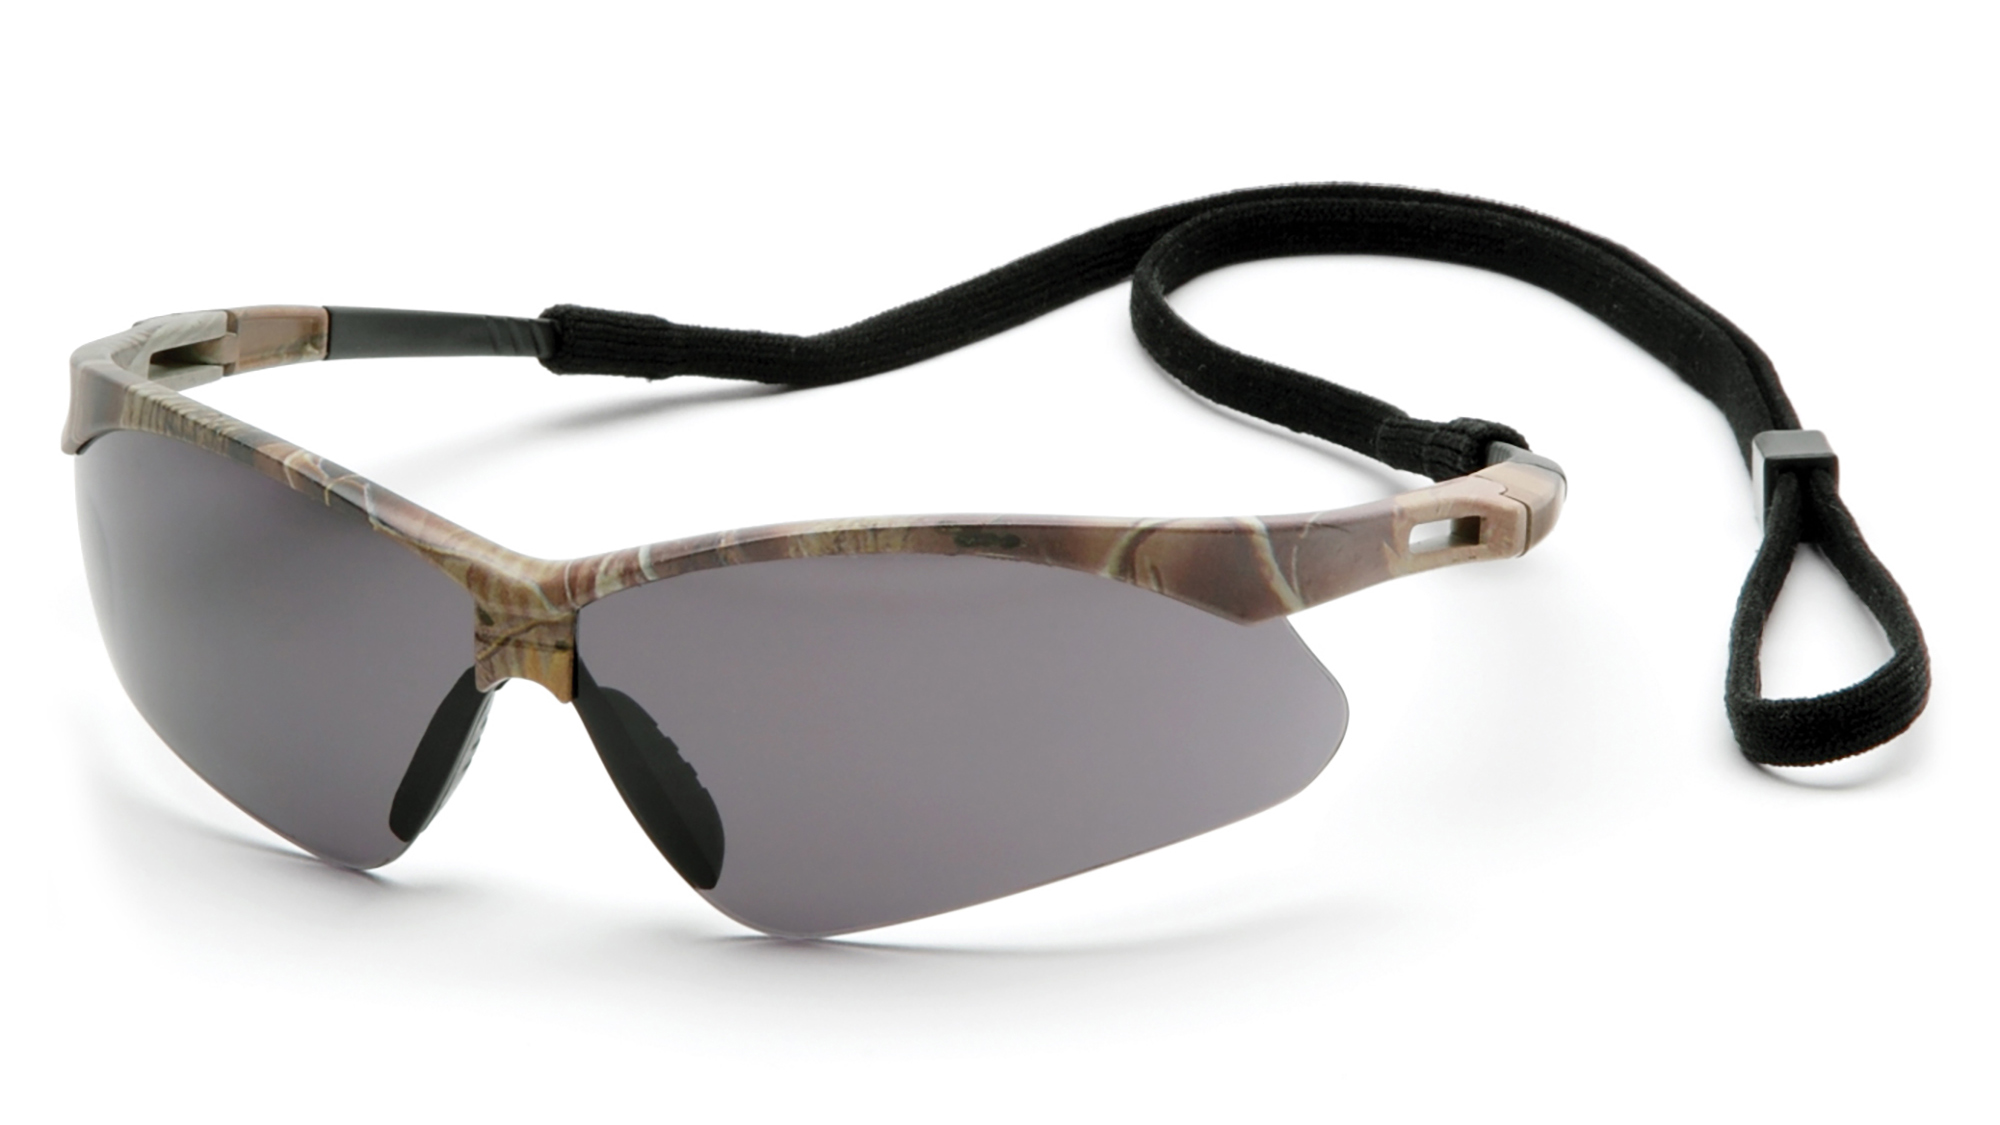 PMXTREME Safety Glasses - Camo Frames Gray Anti-Fog Lens